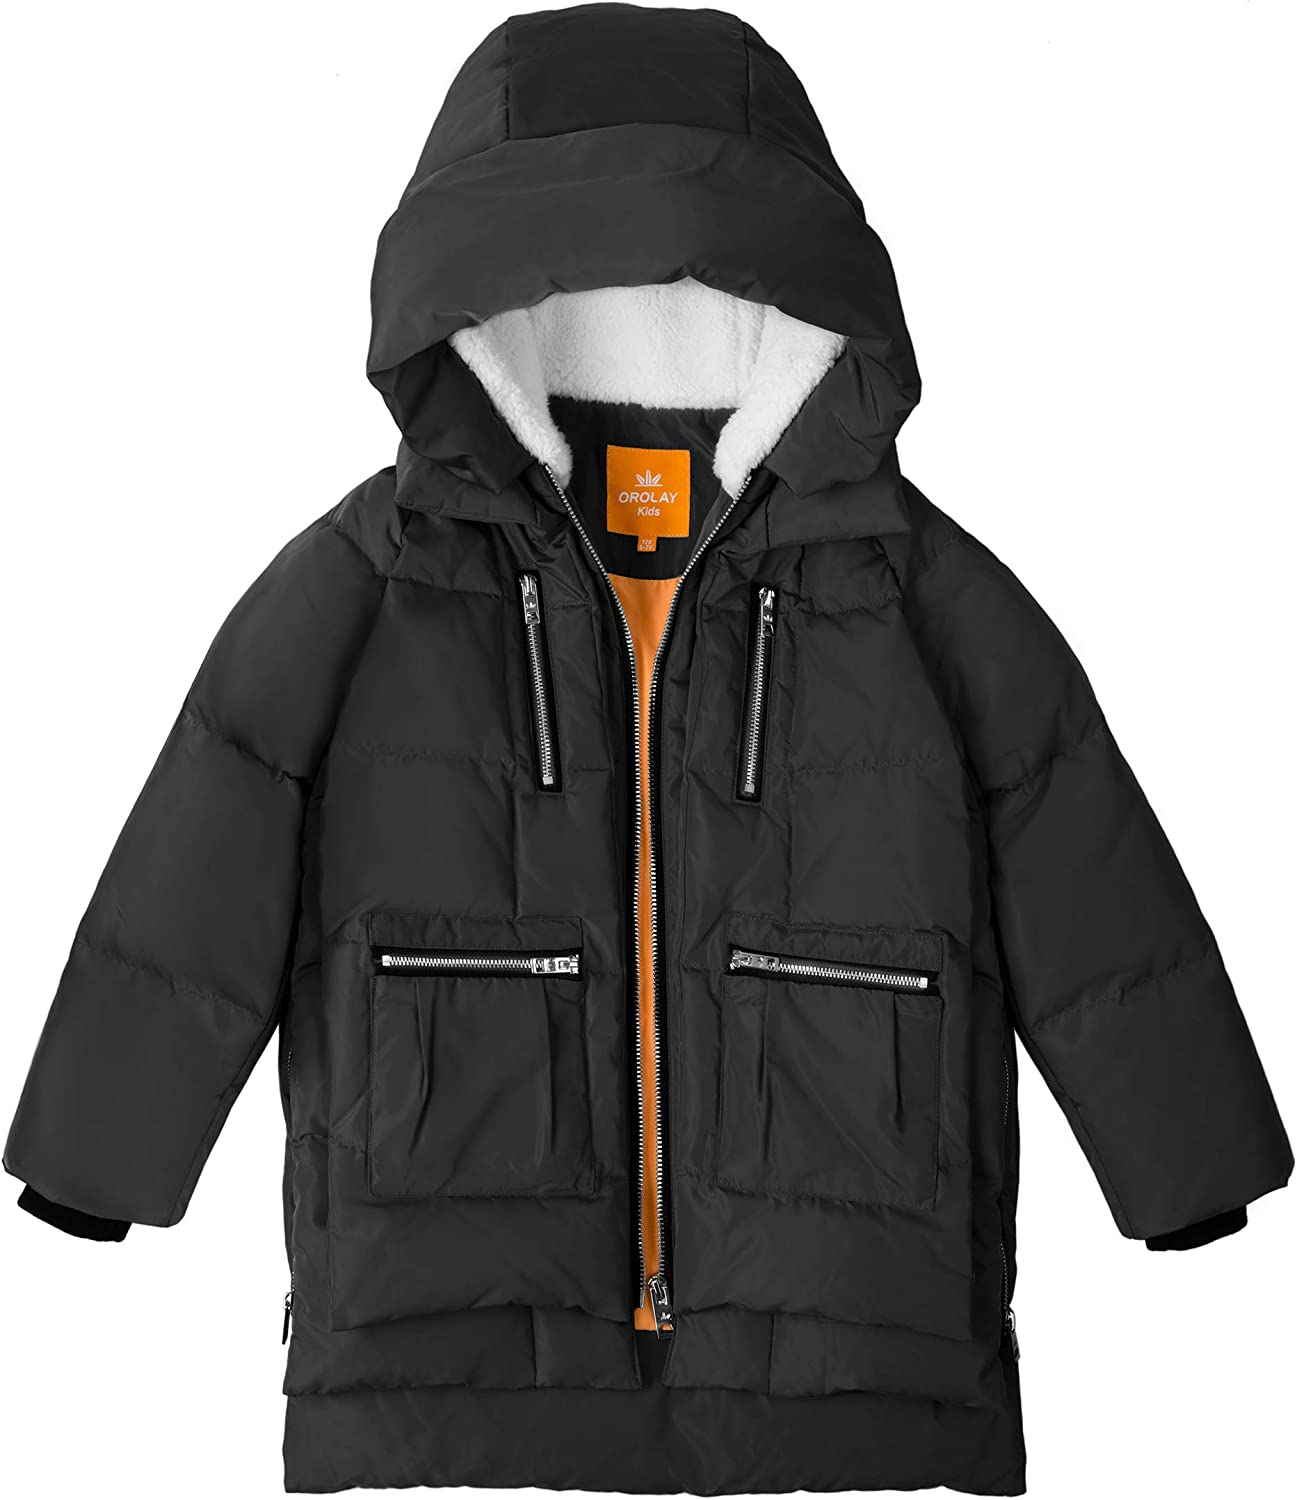 ARTFFEL Mens Winter Warm Thicker Hoodie Relaxed Fit Down Quilted Jacket Coat Parka